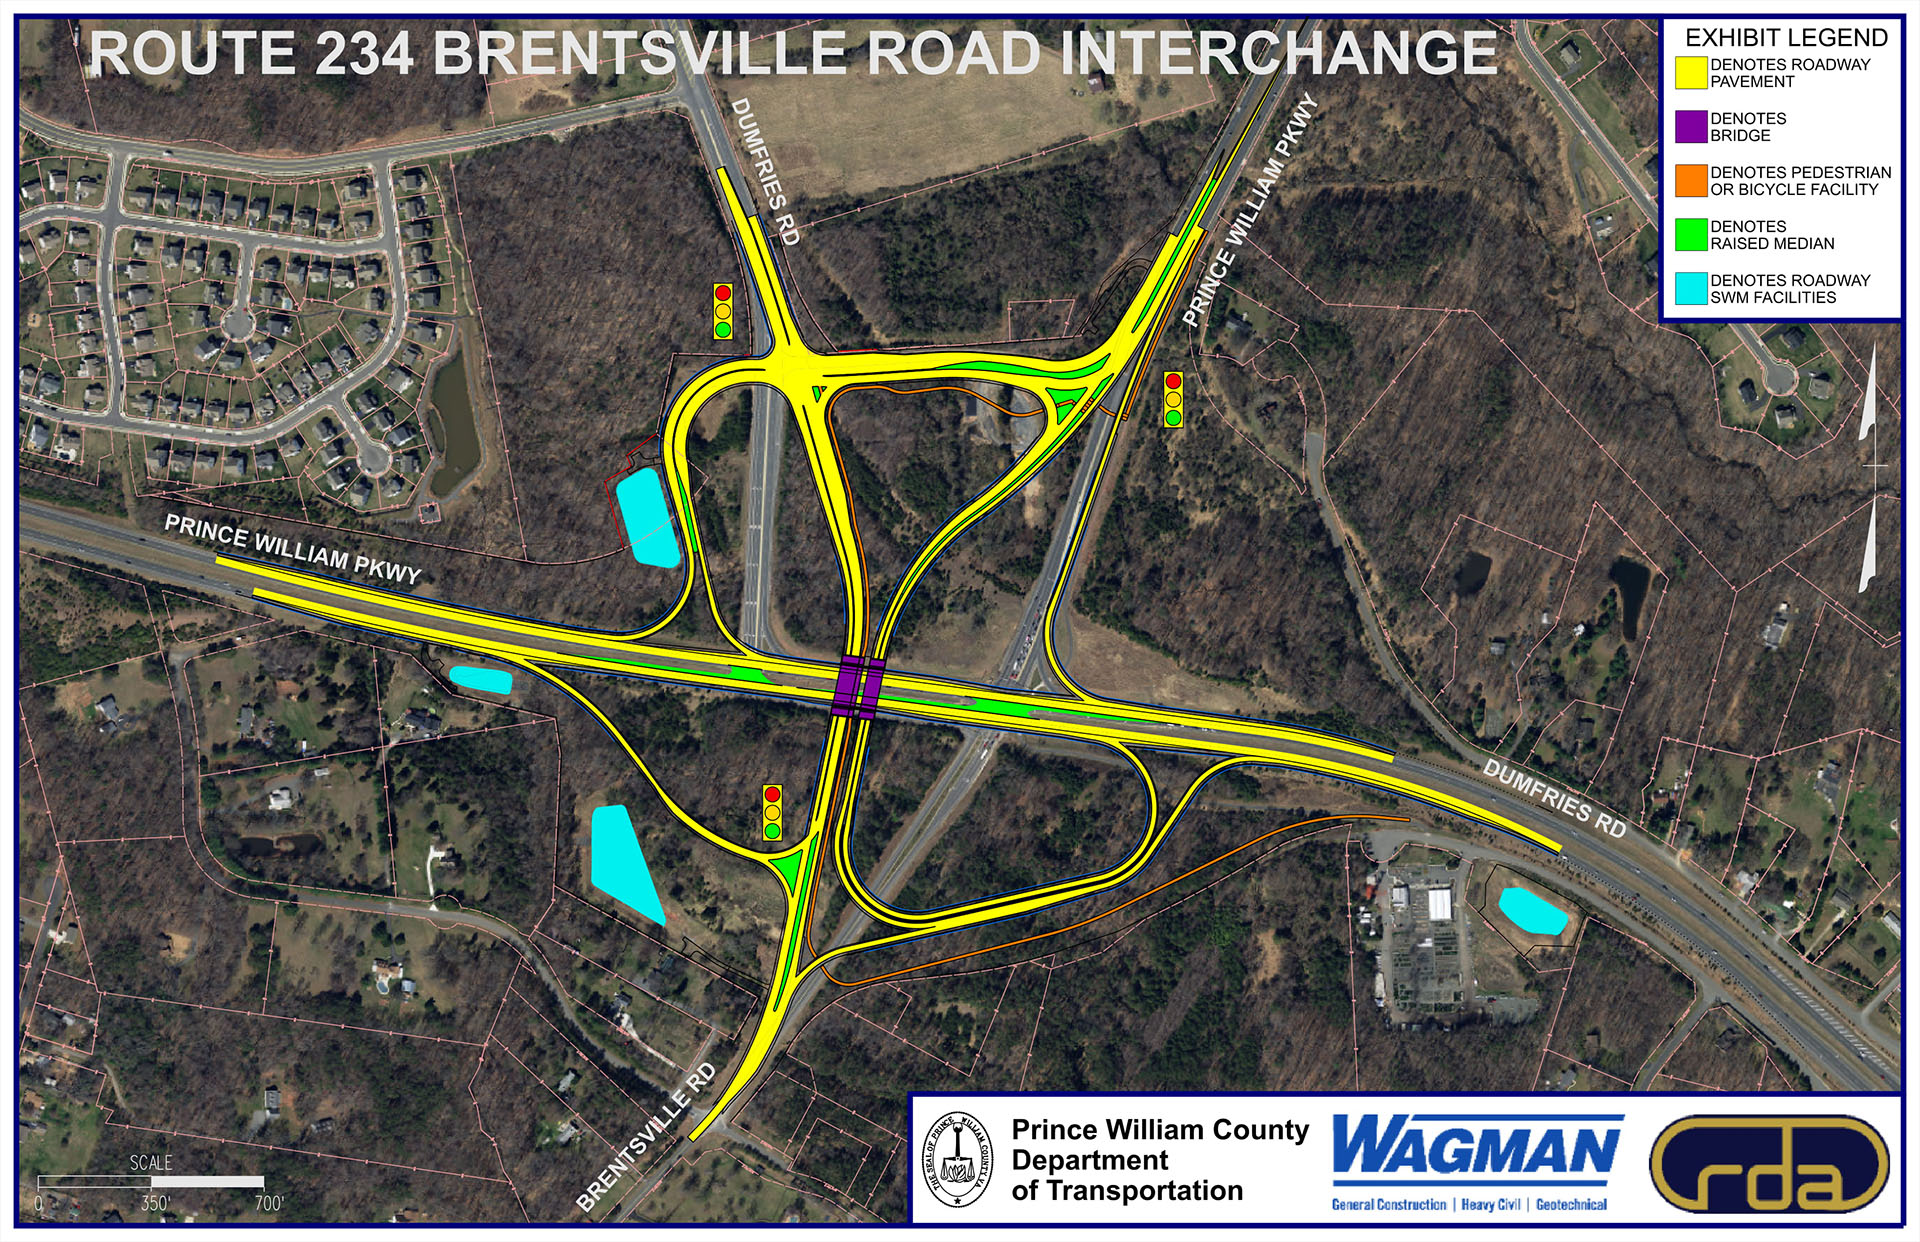 Construction company hired for interchange project